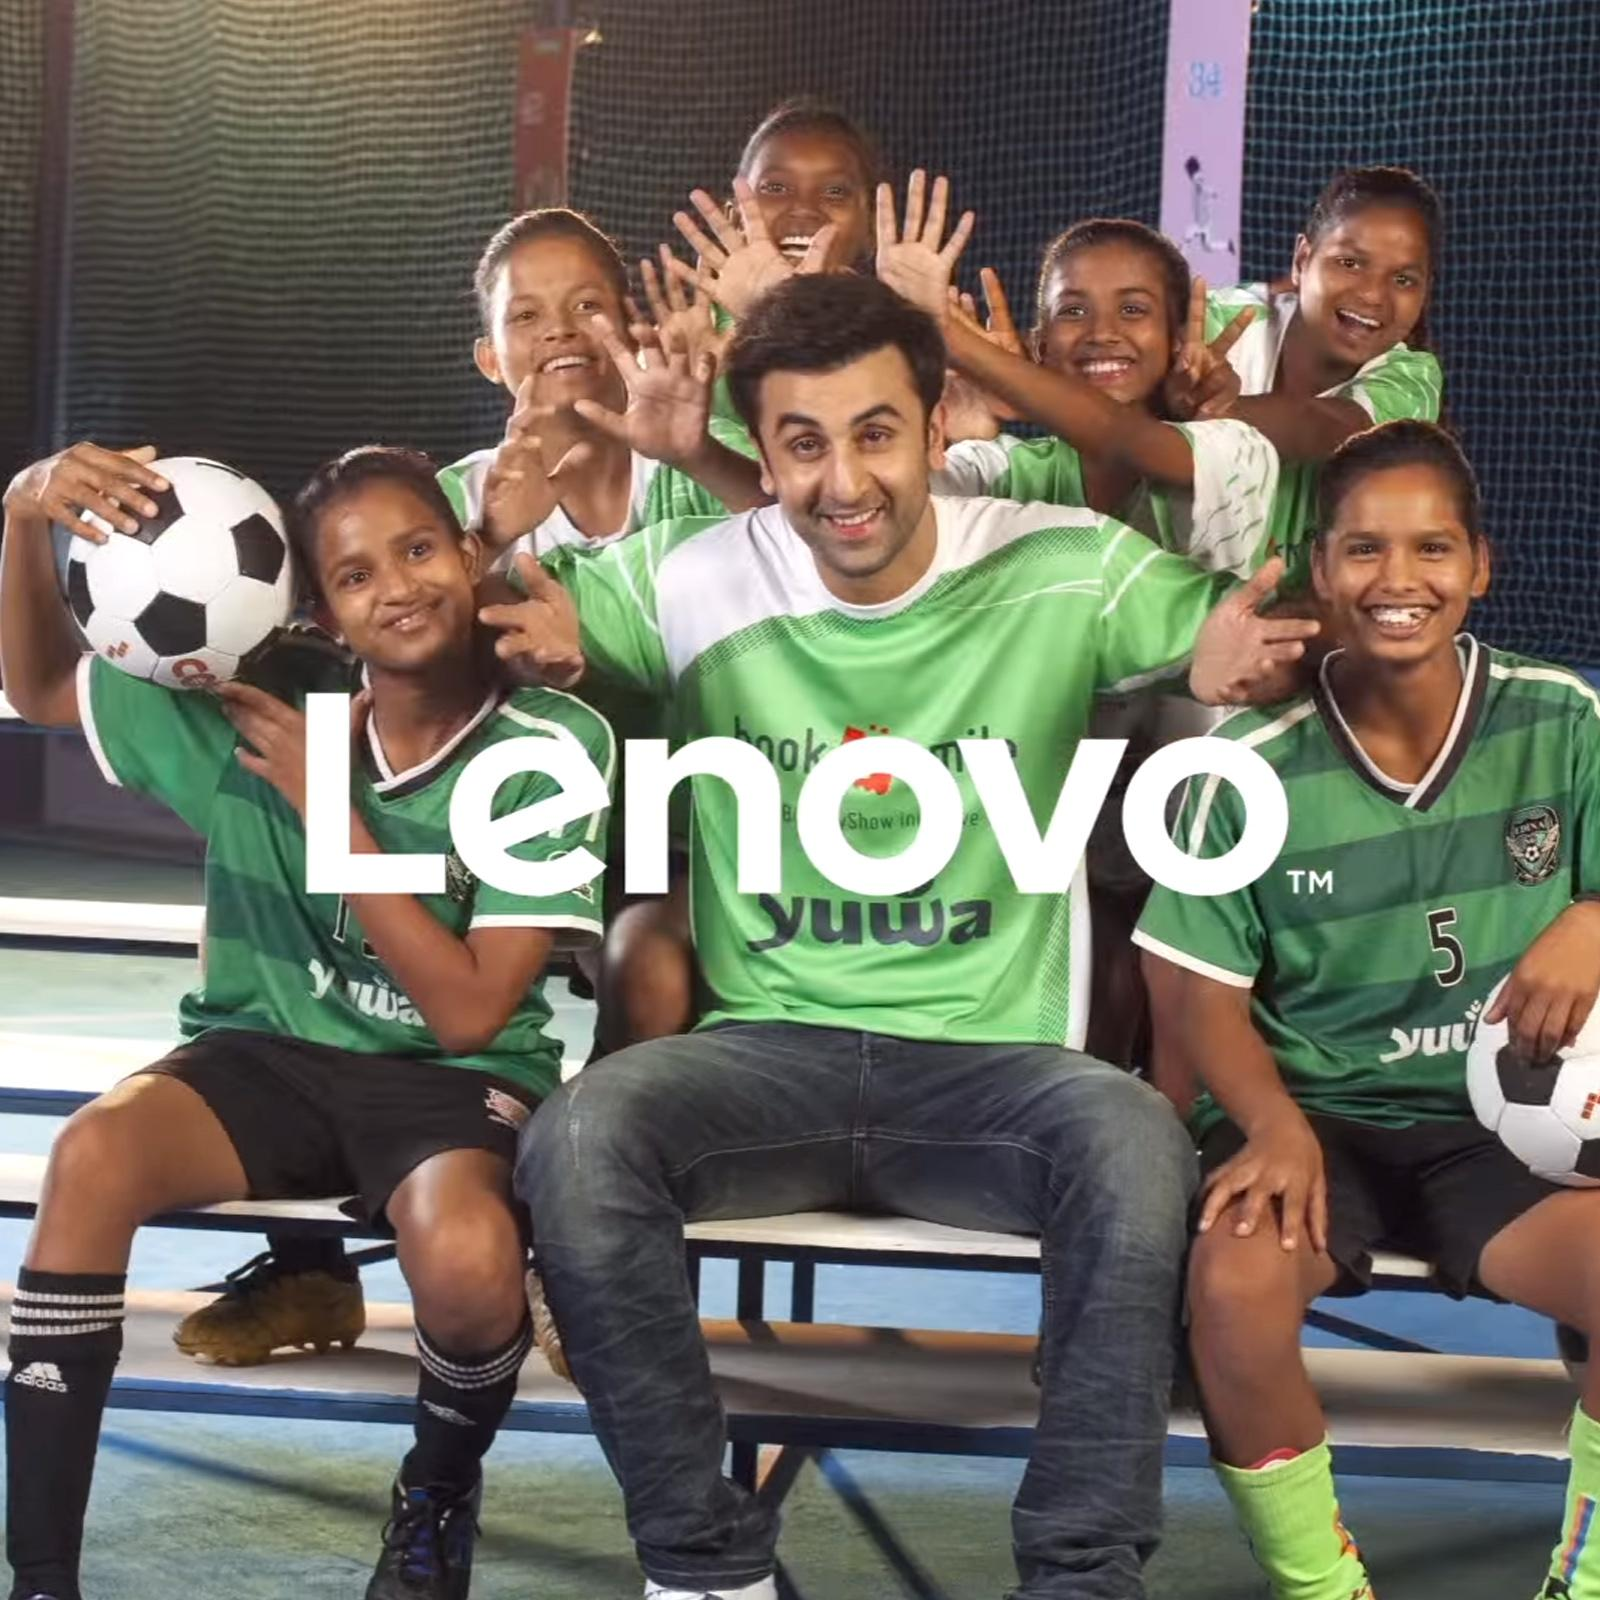 http://www.indiantelevision.com/sites/default/files/styles/smartcrop_800x800/public/images/tv-images/2016/07/20/lenovo%20GirlsWithGoals.jpg?itok=wicvwYSS